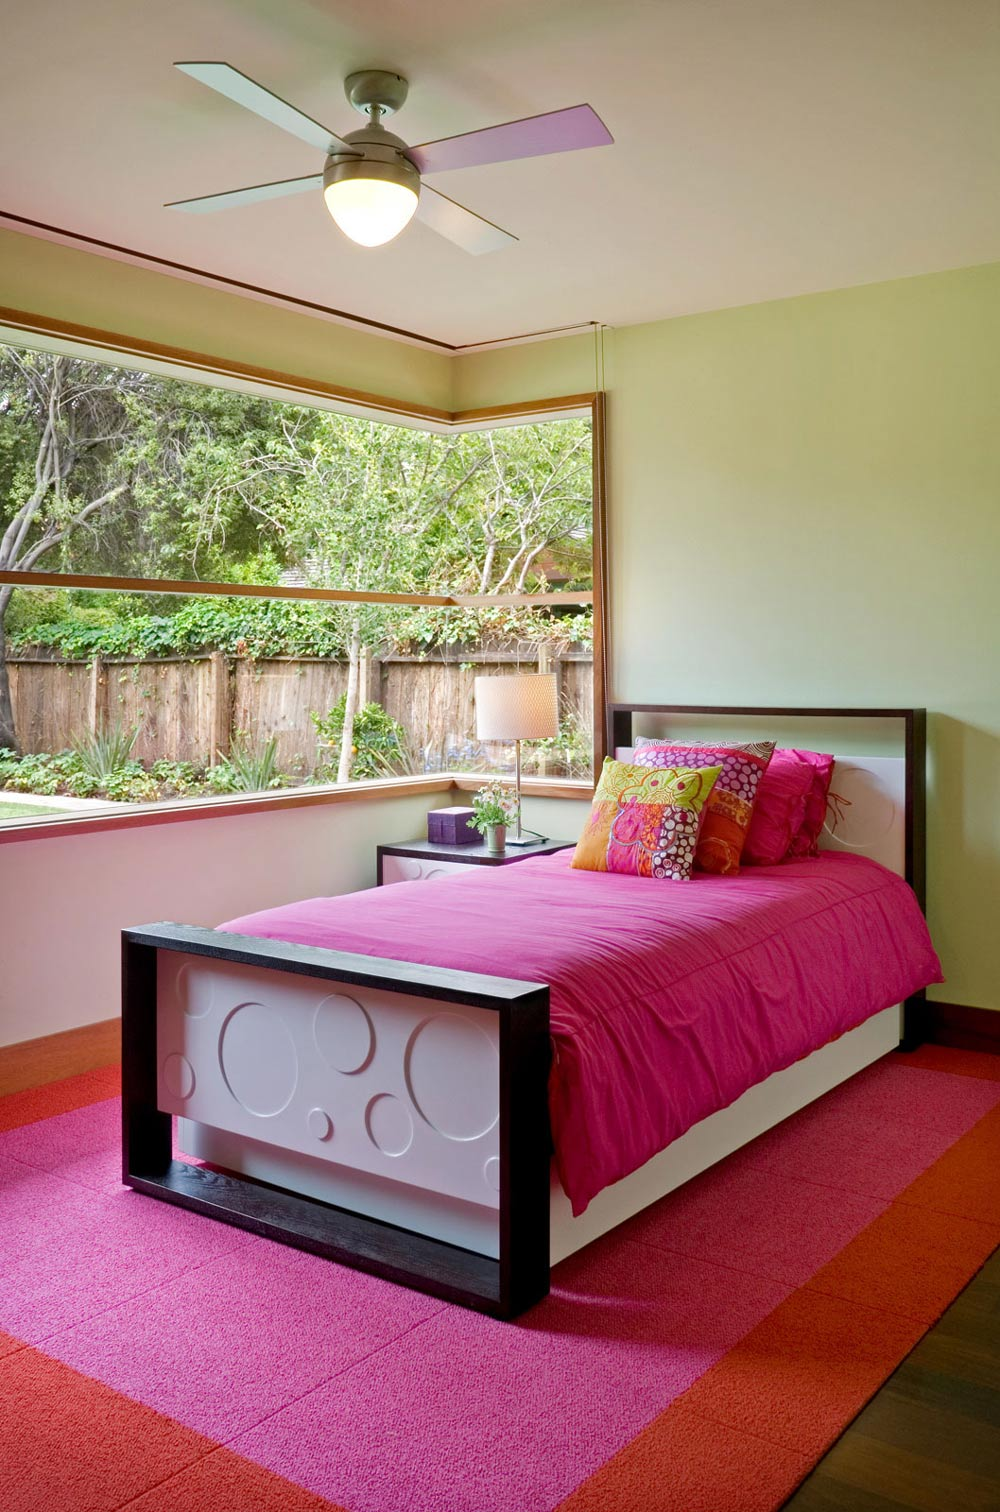 Bedroom, Pink & Orange Rug, Wheeler Residence in Menlo Park, California by William Duff Architects